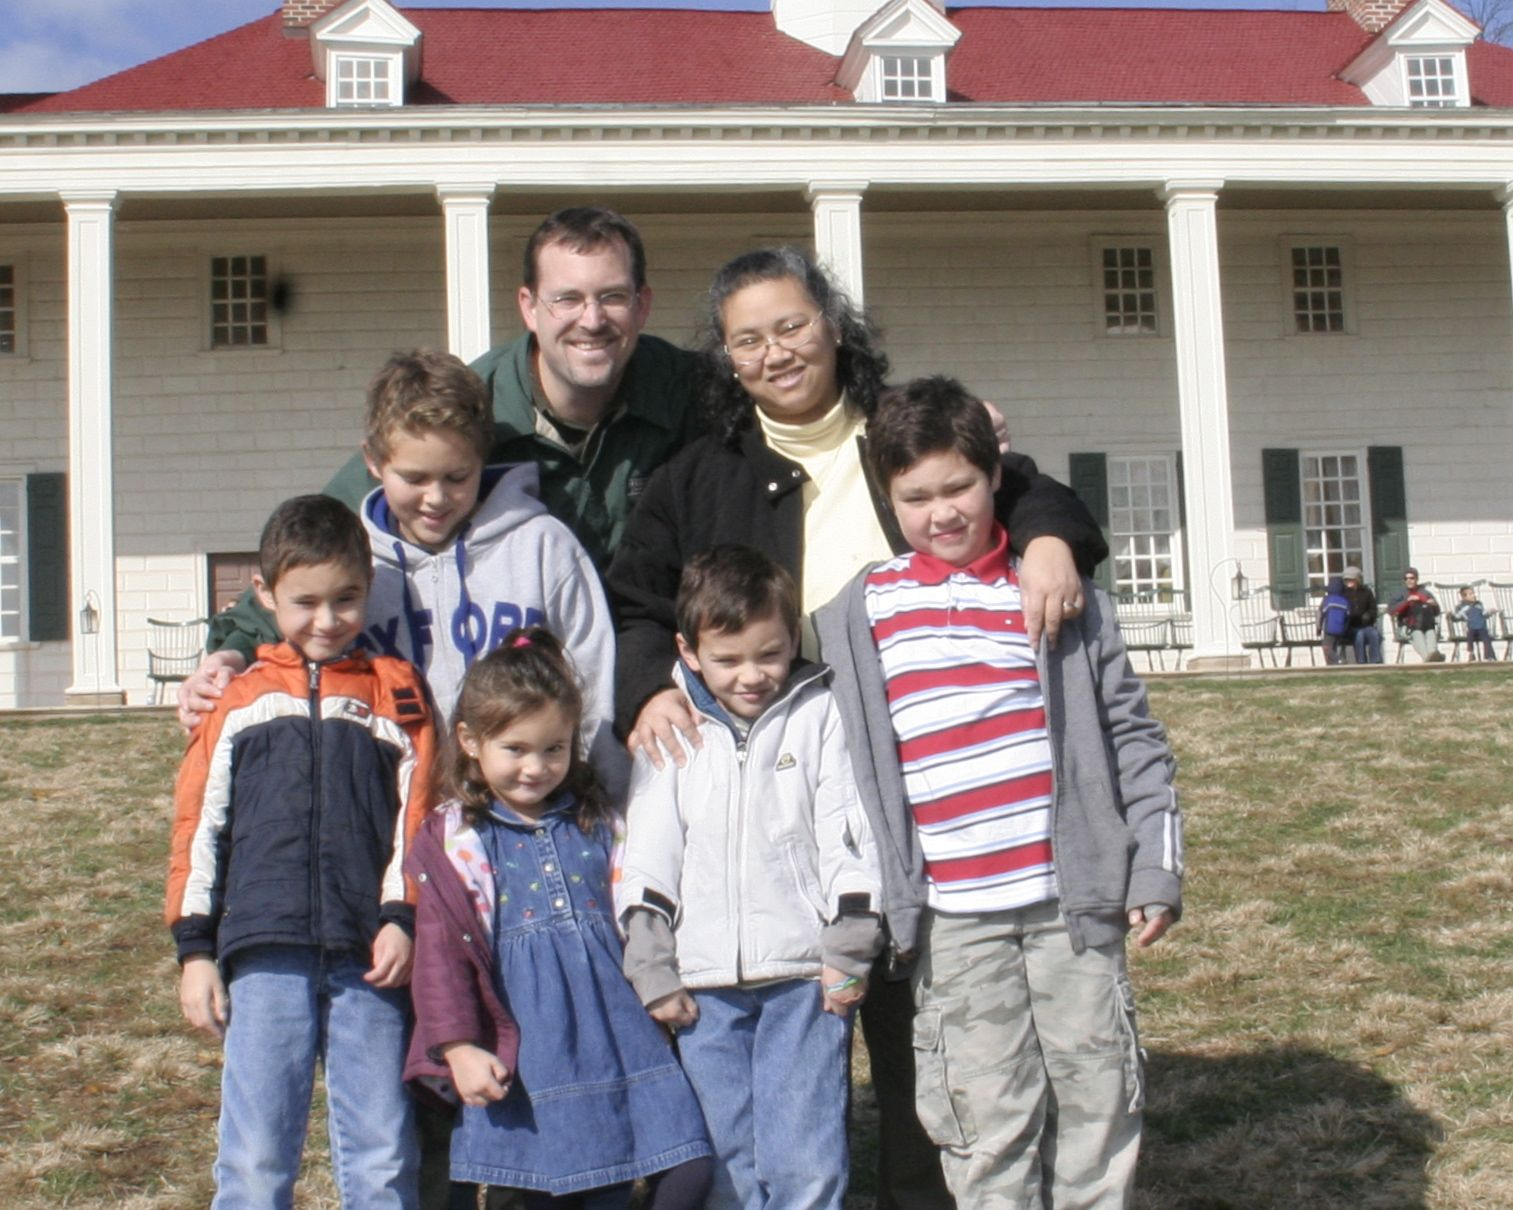 When we began in 2009. No, that's not our home; we were on a field trip visiting George Washington's at Mt. Vernon.